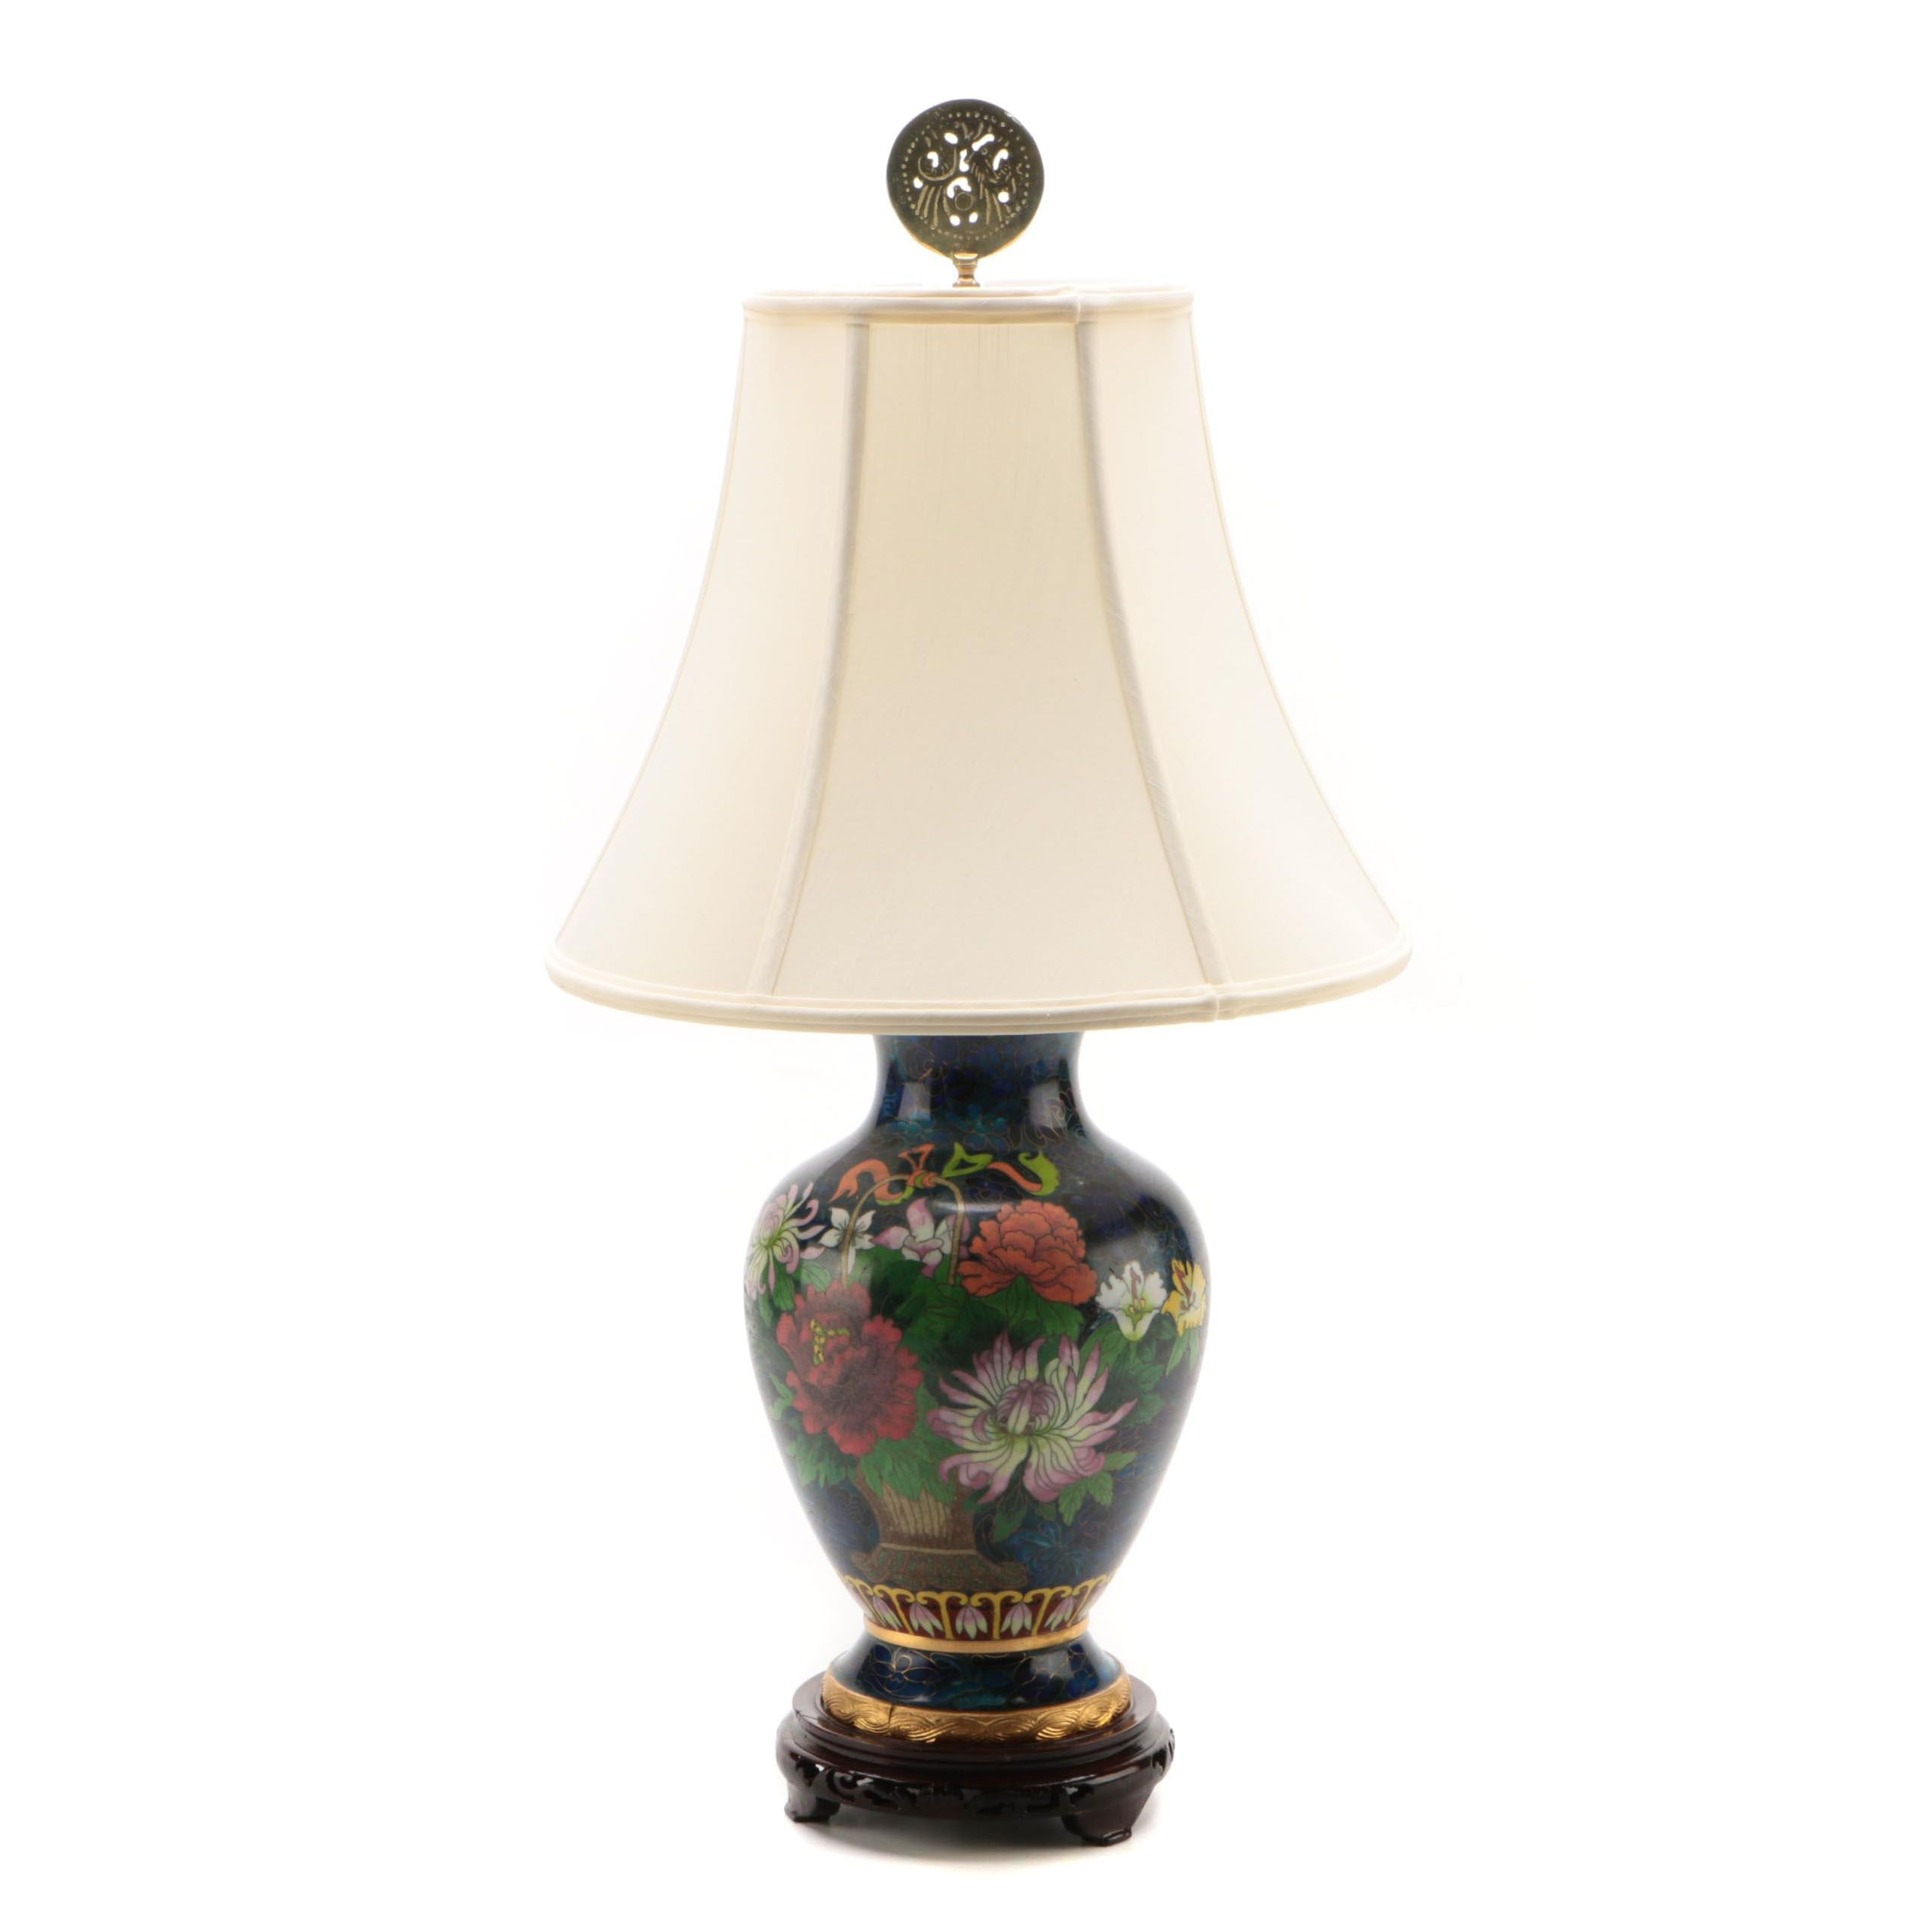 Chinese Cloisonné Converted Vase Table Lamp with Silk Shade